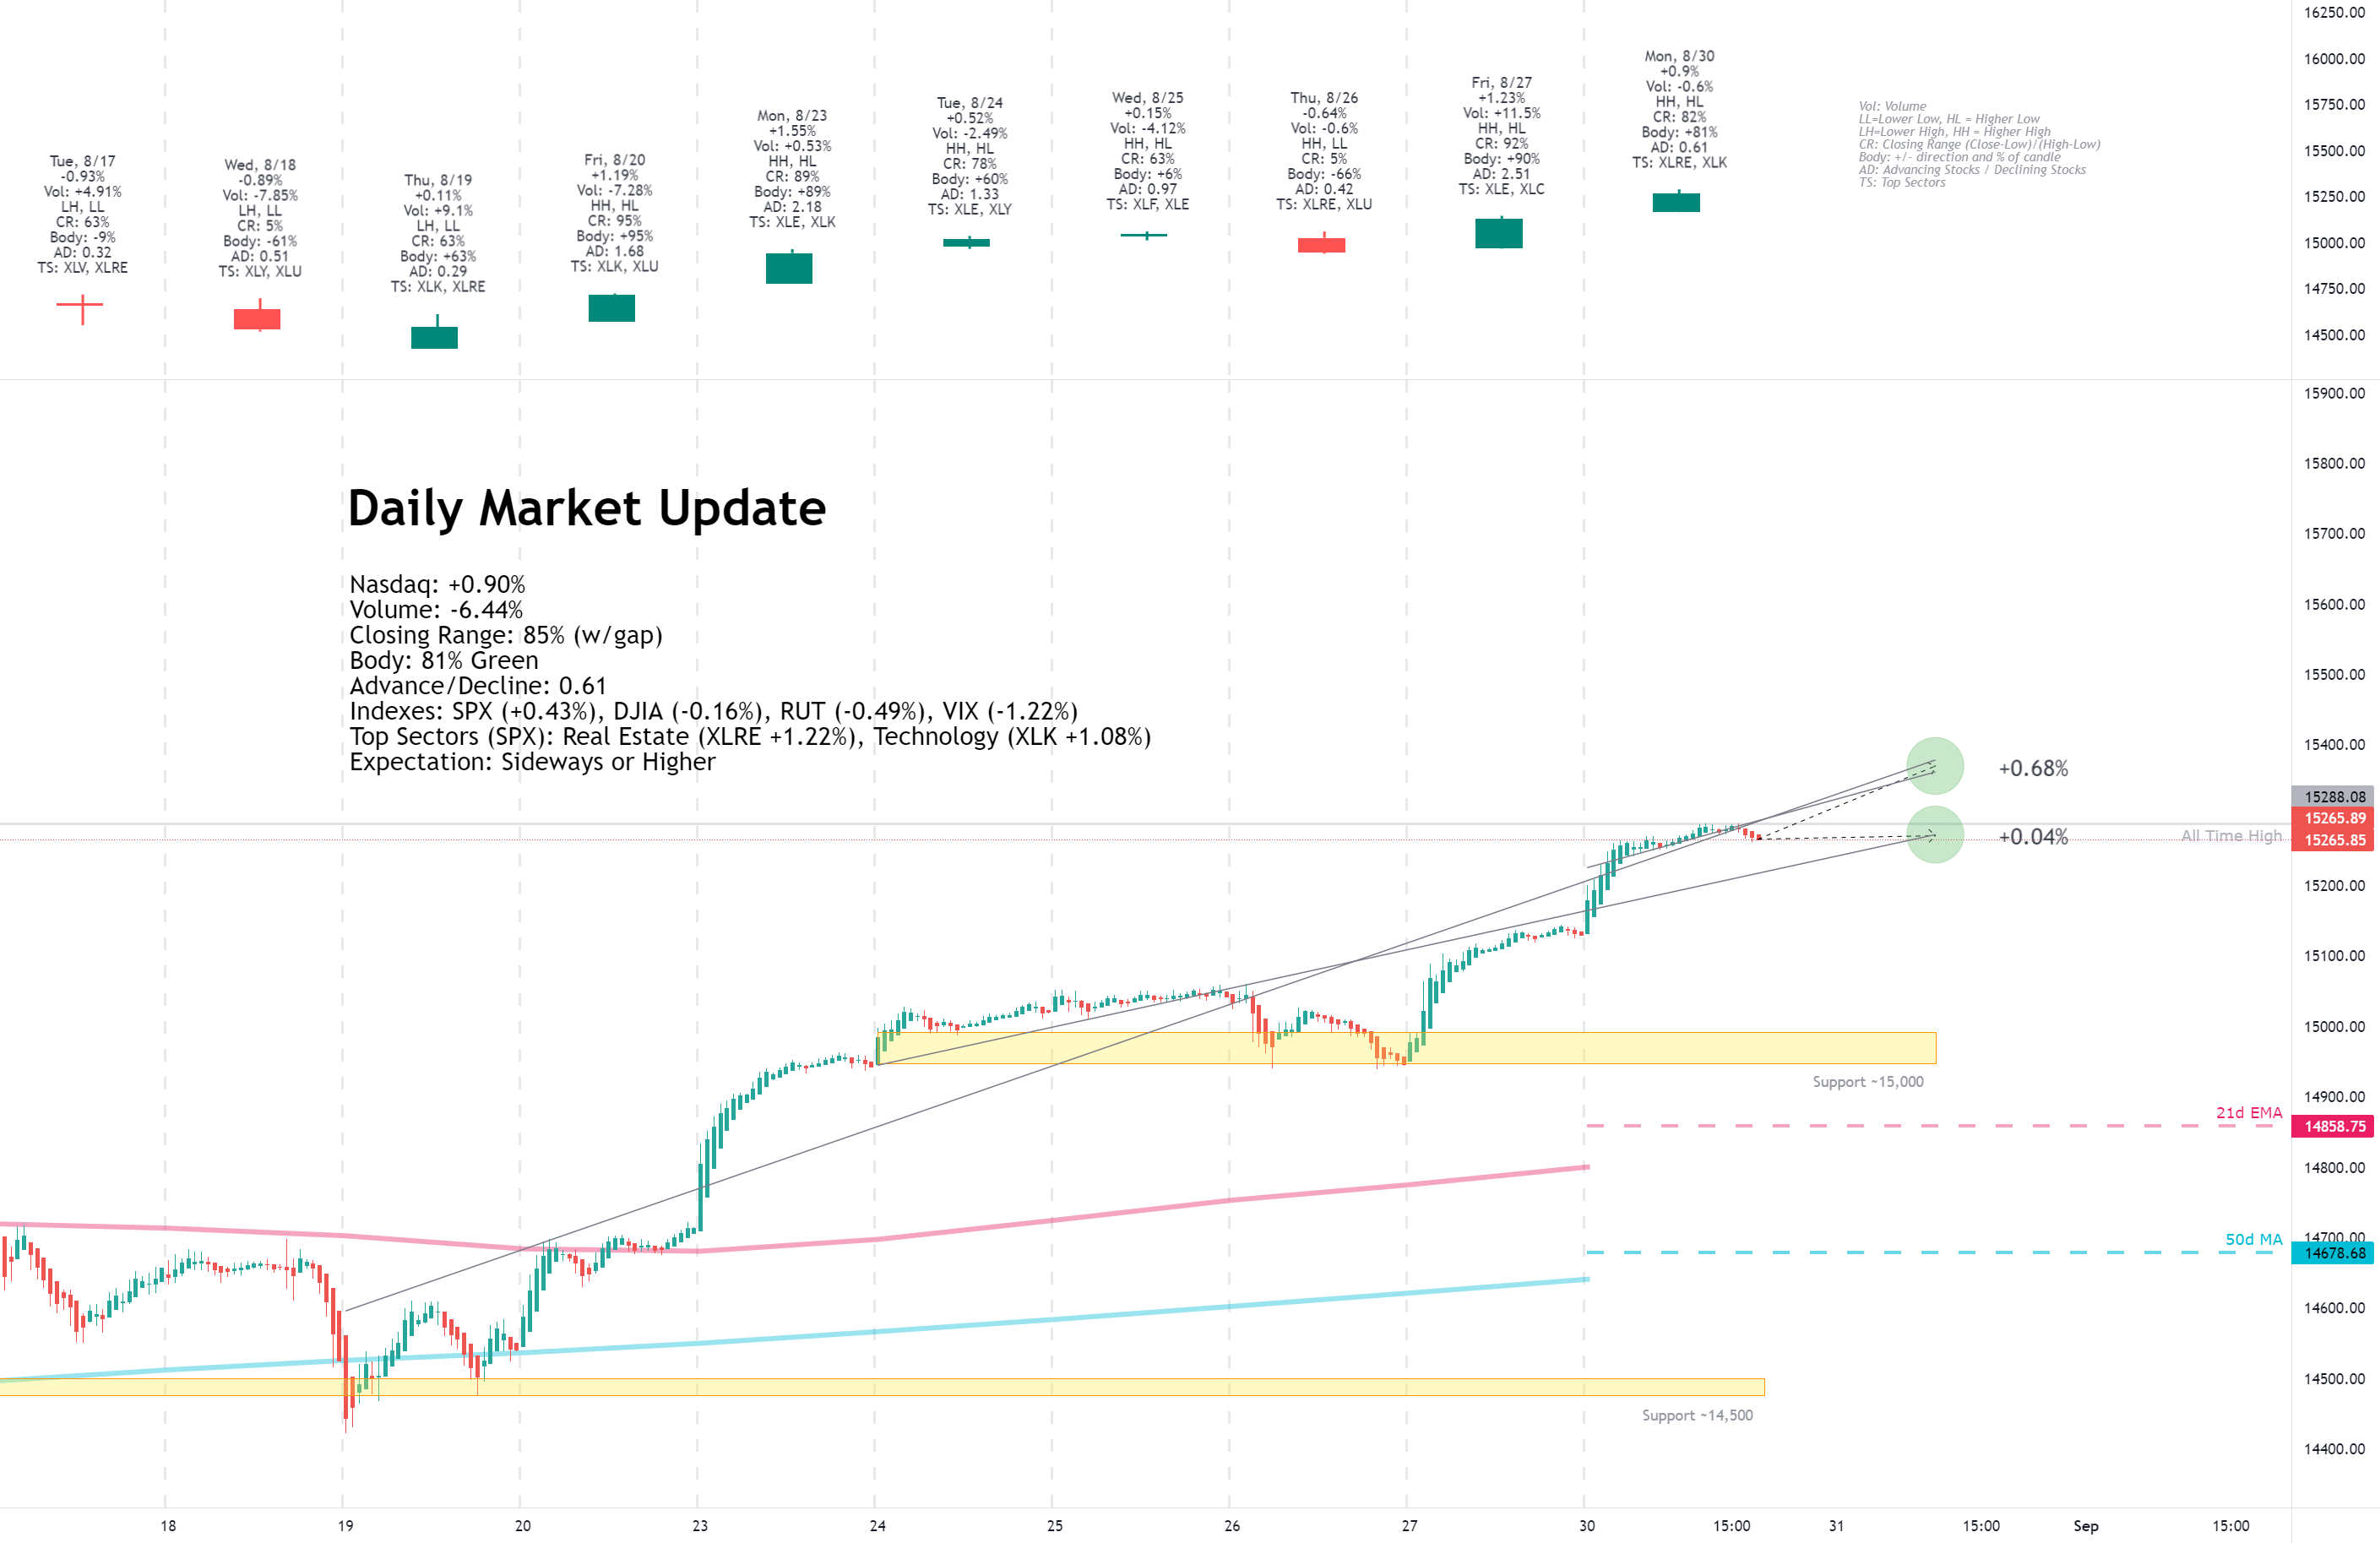 Daily Market Update for 8/30